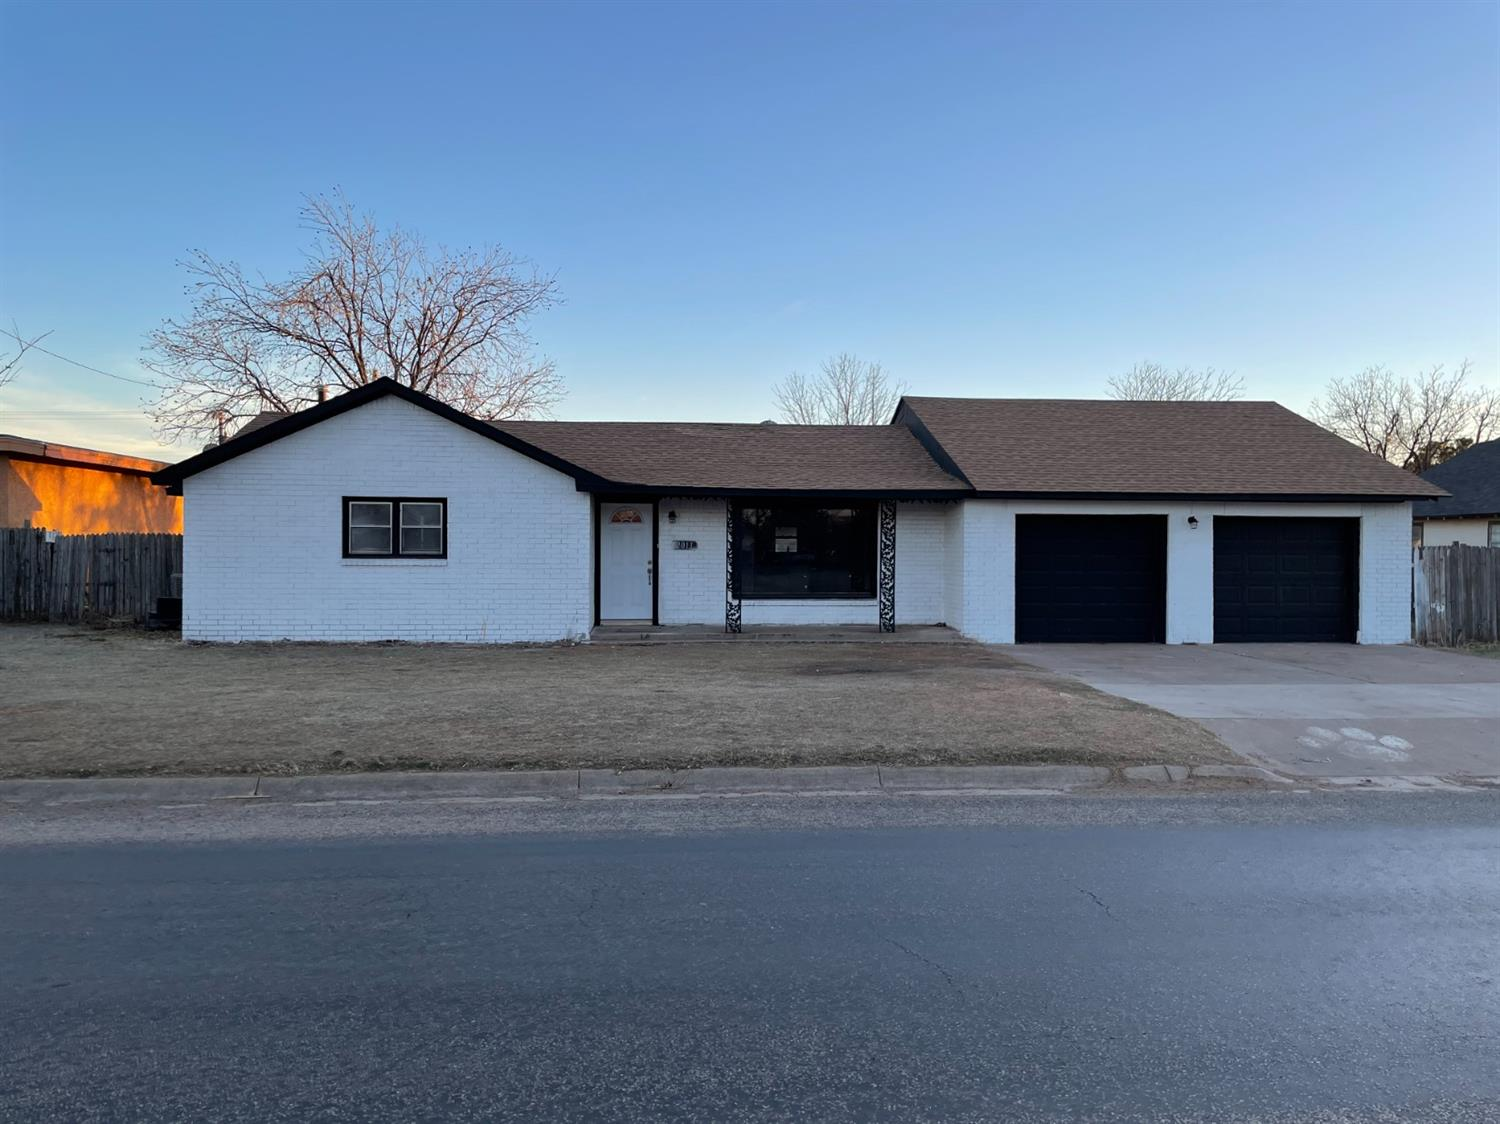 Great Small Town Community and close to Lubbock. This 4 bedroom 2 bath 2 car garage has had a make over. New paint, flooring, fixtures, gas line, electrical upgrade, hvac and nearly on a 1/2 acre lot is great for those that need the room.